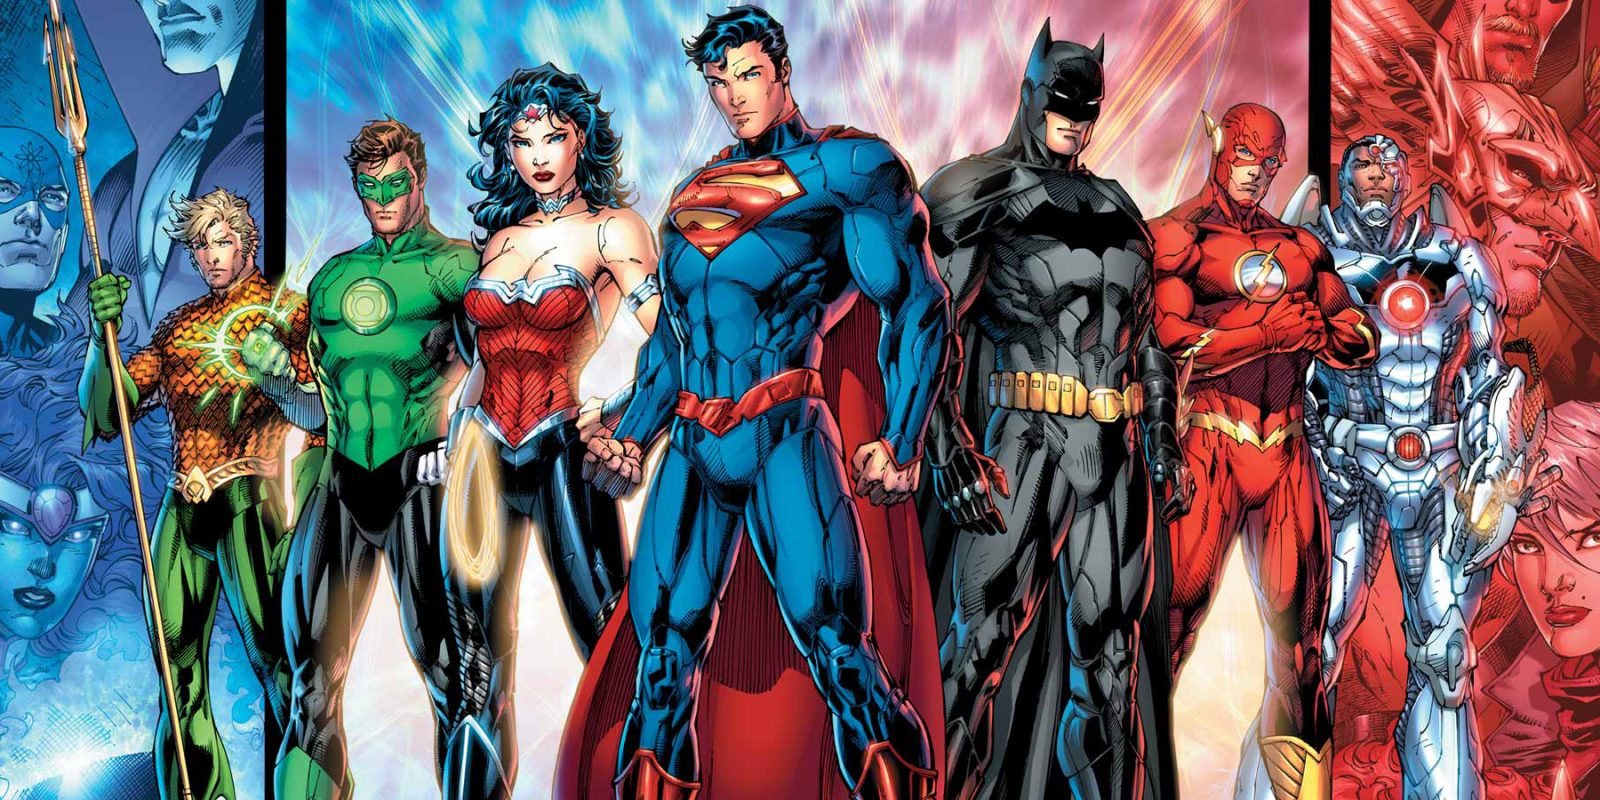 Amazon has a selection of free Marvel and DC Comics for